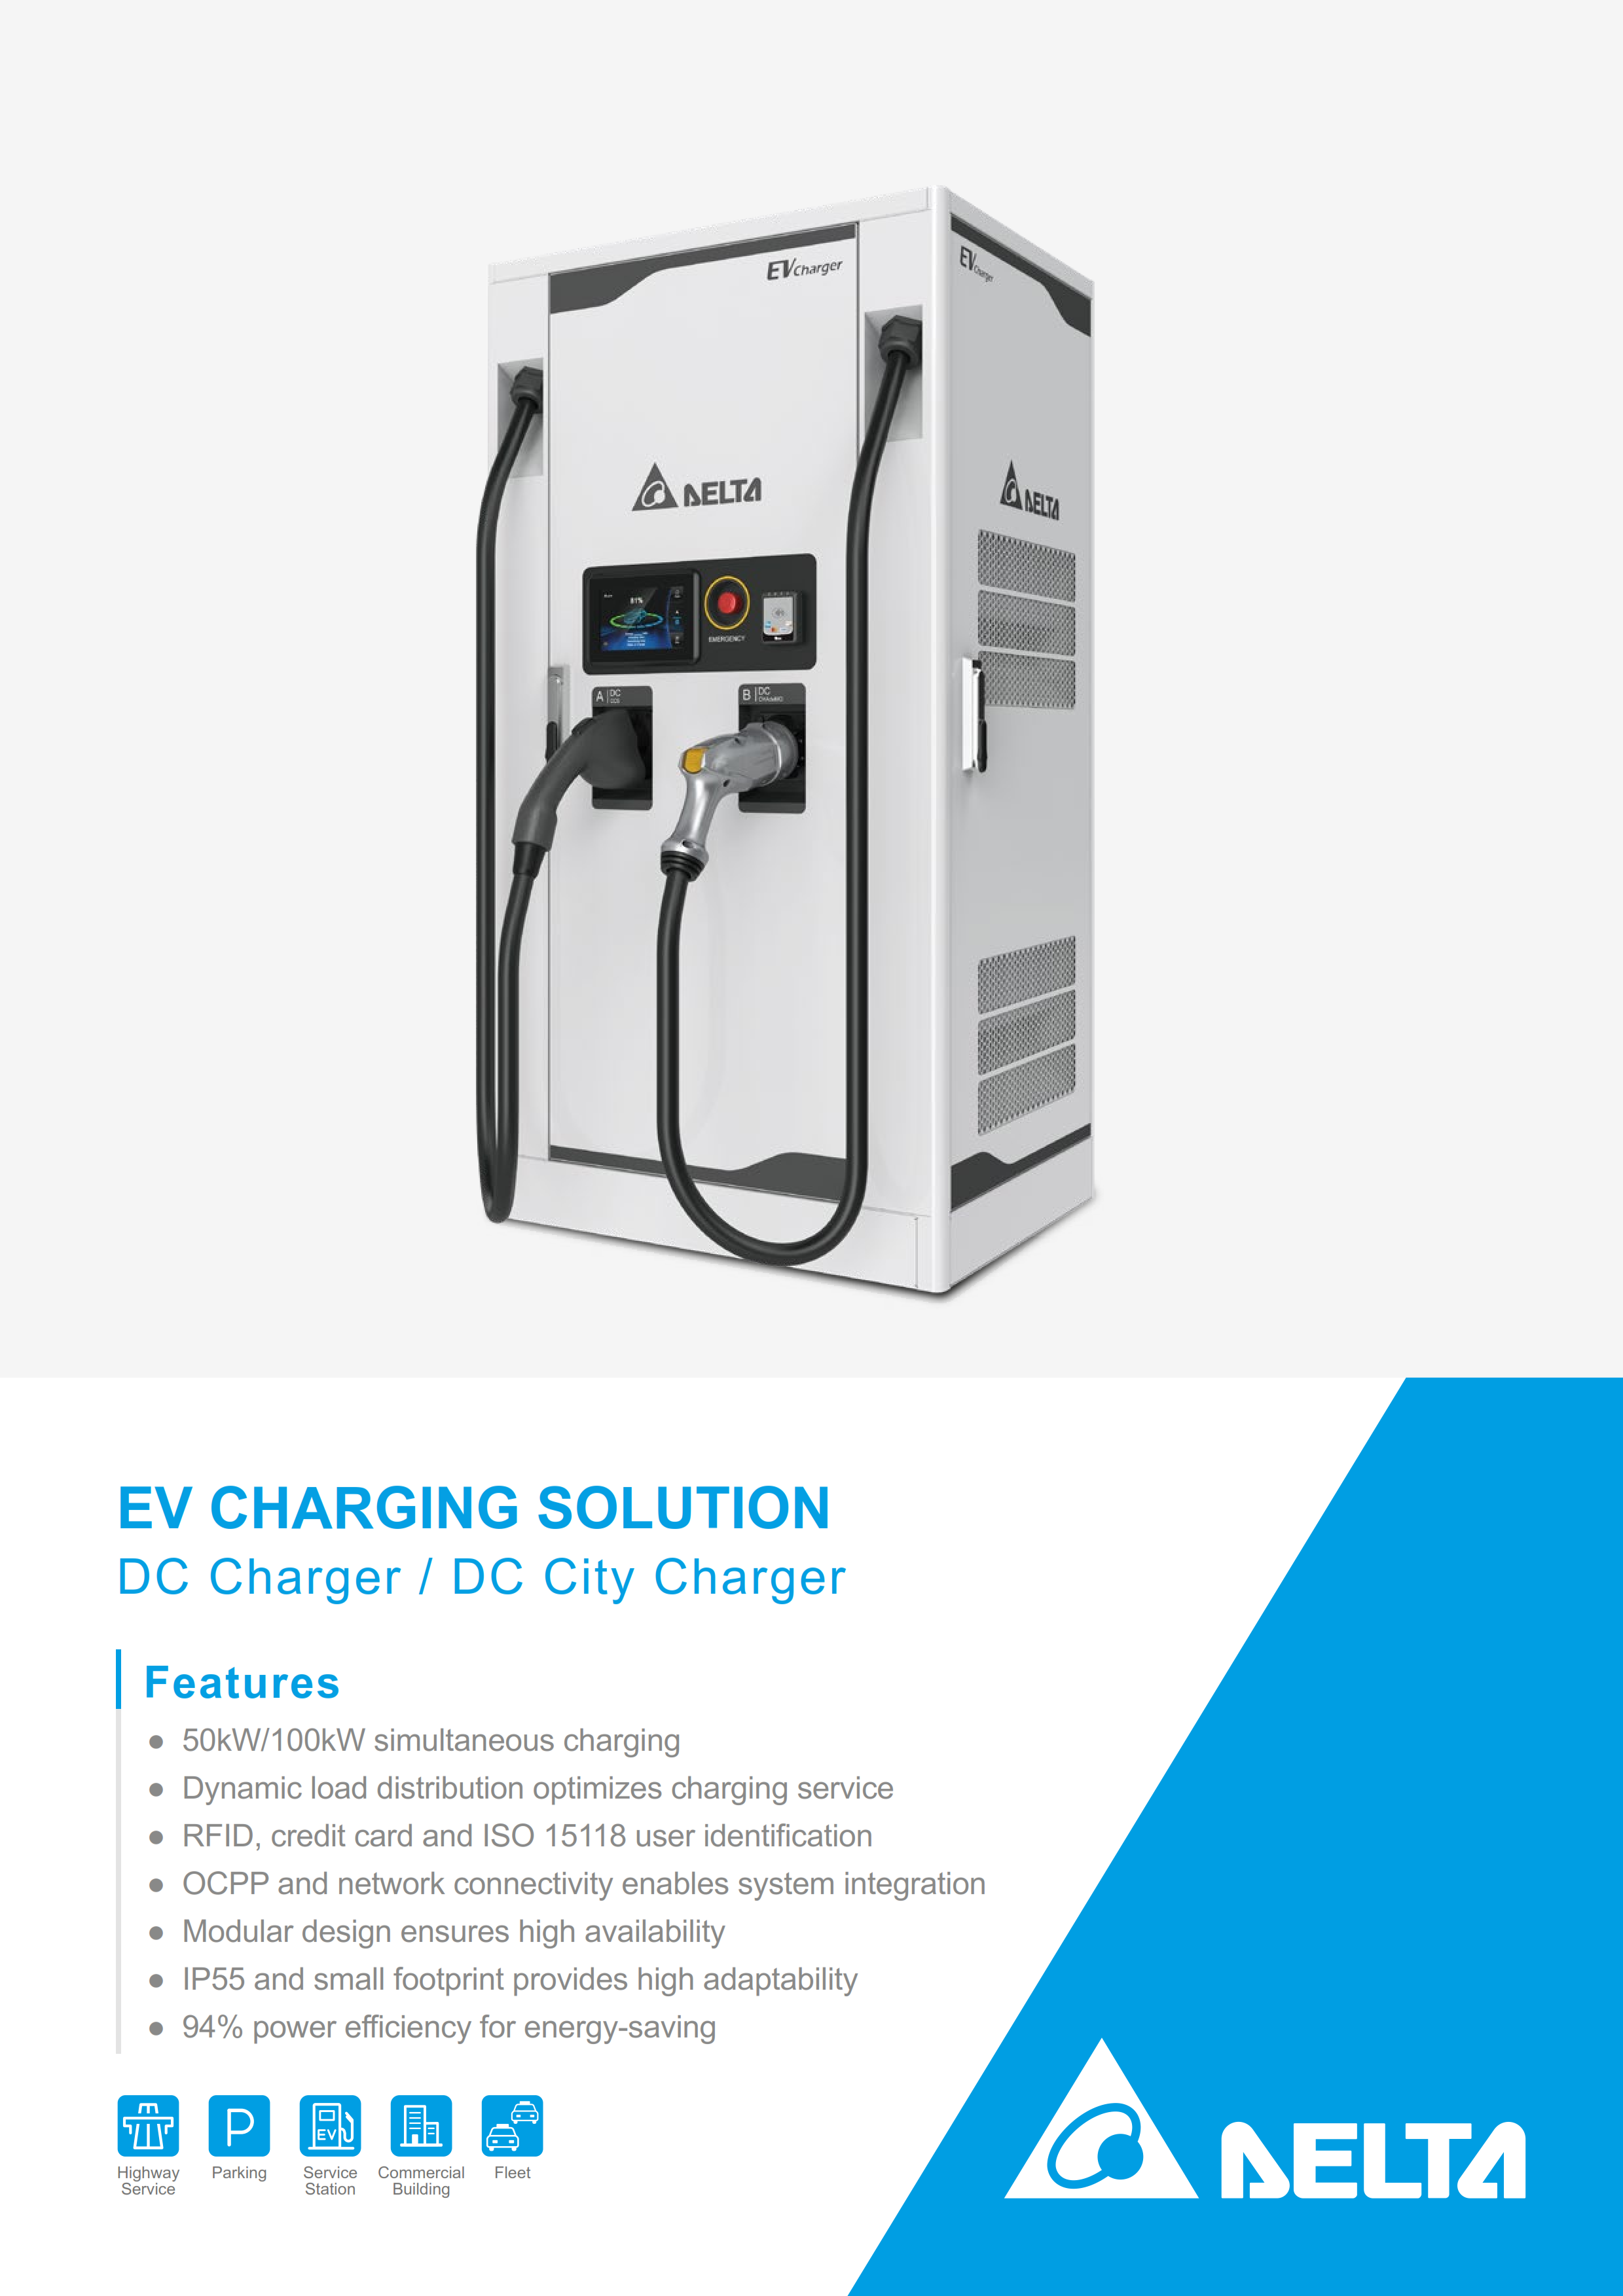 Delta DC charger, DC city charger 100KW Commercial EV charger